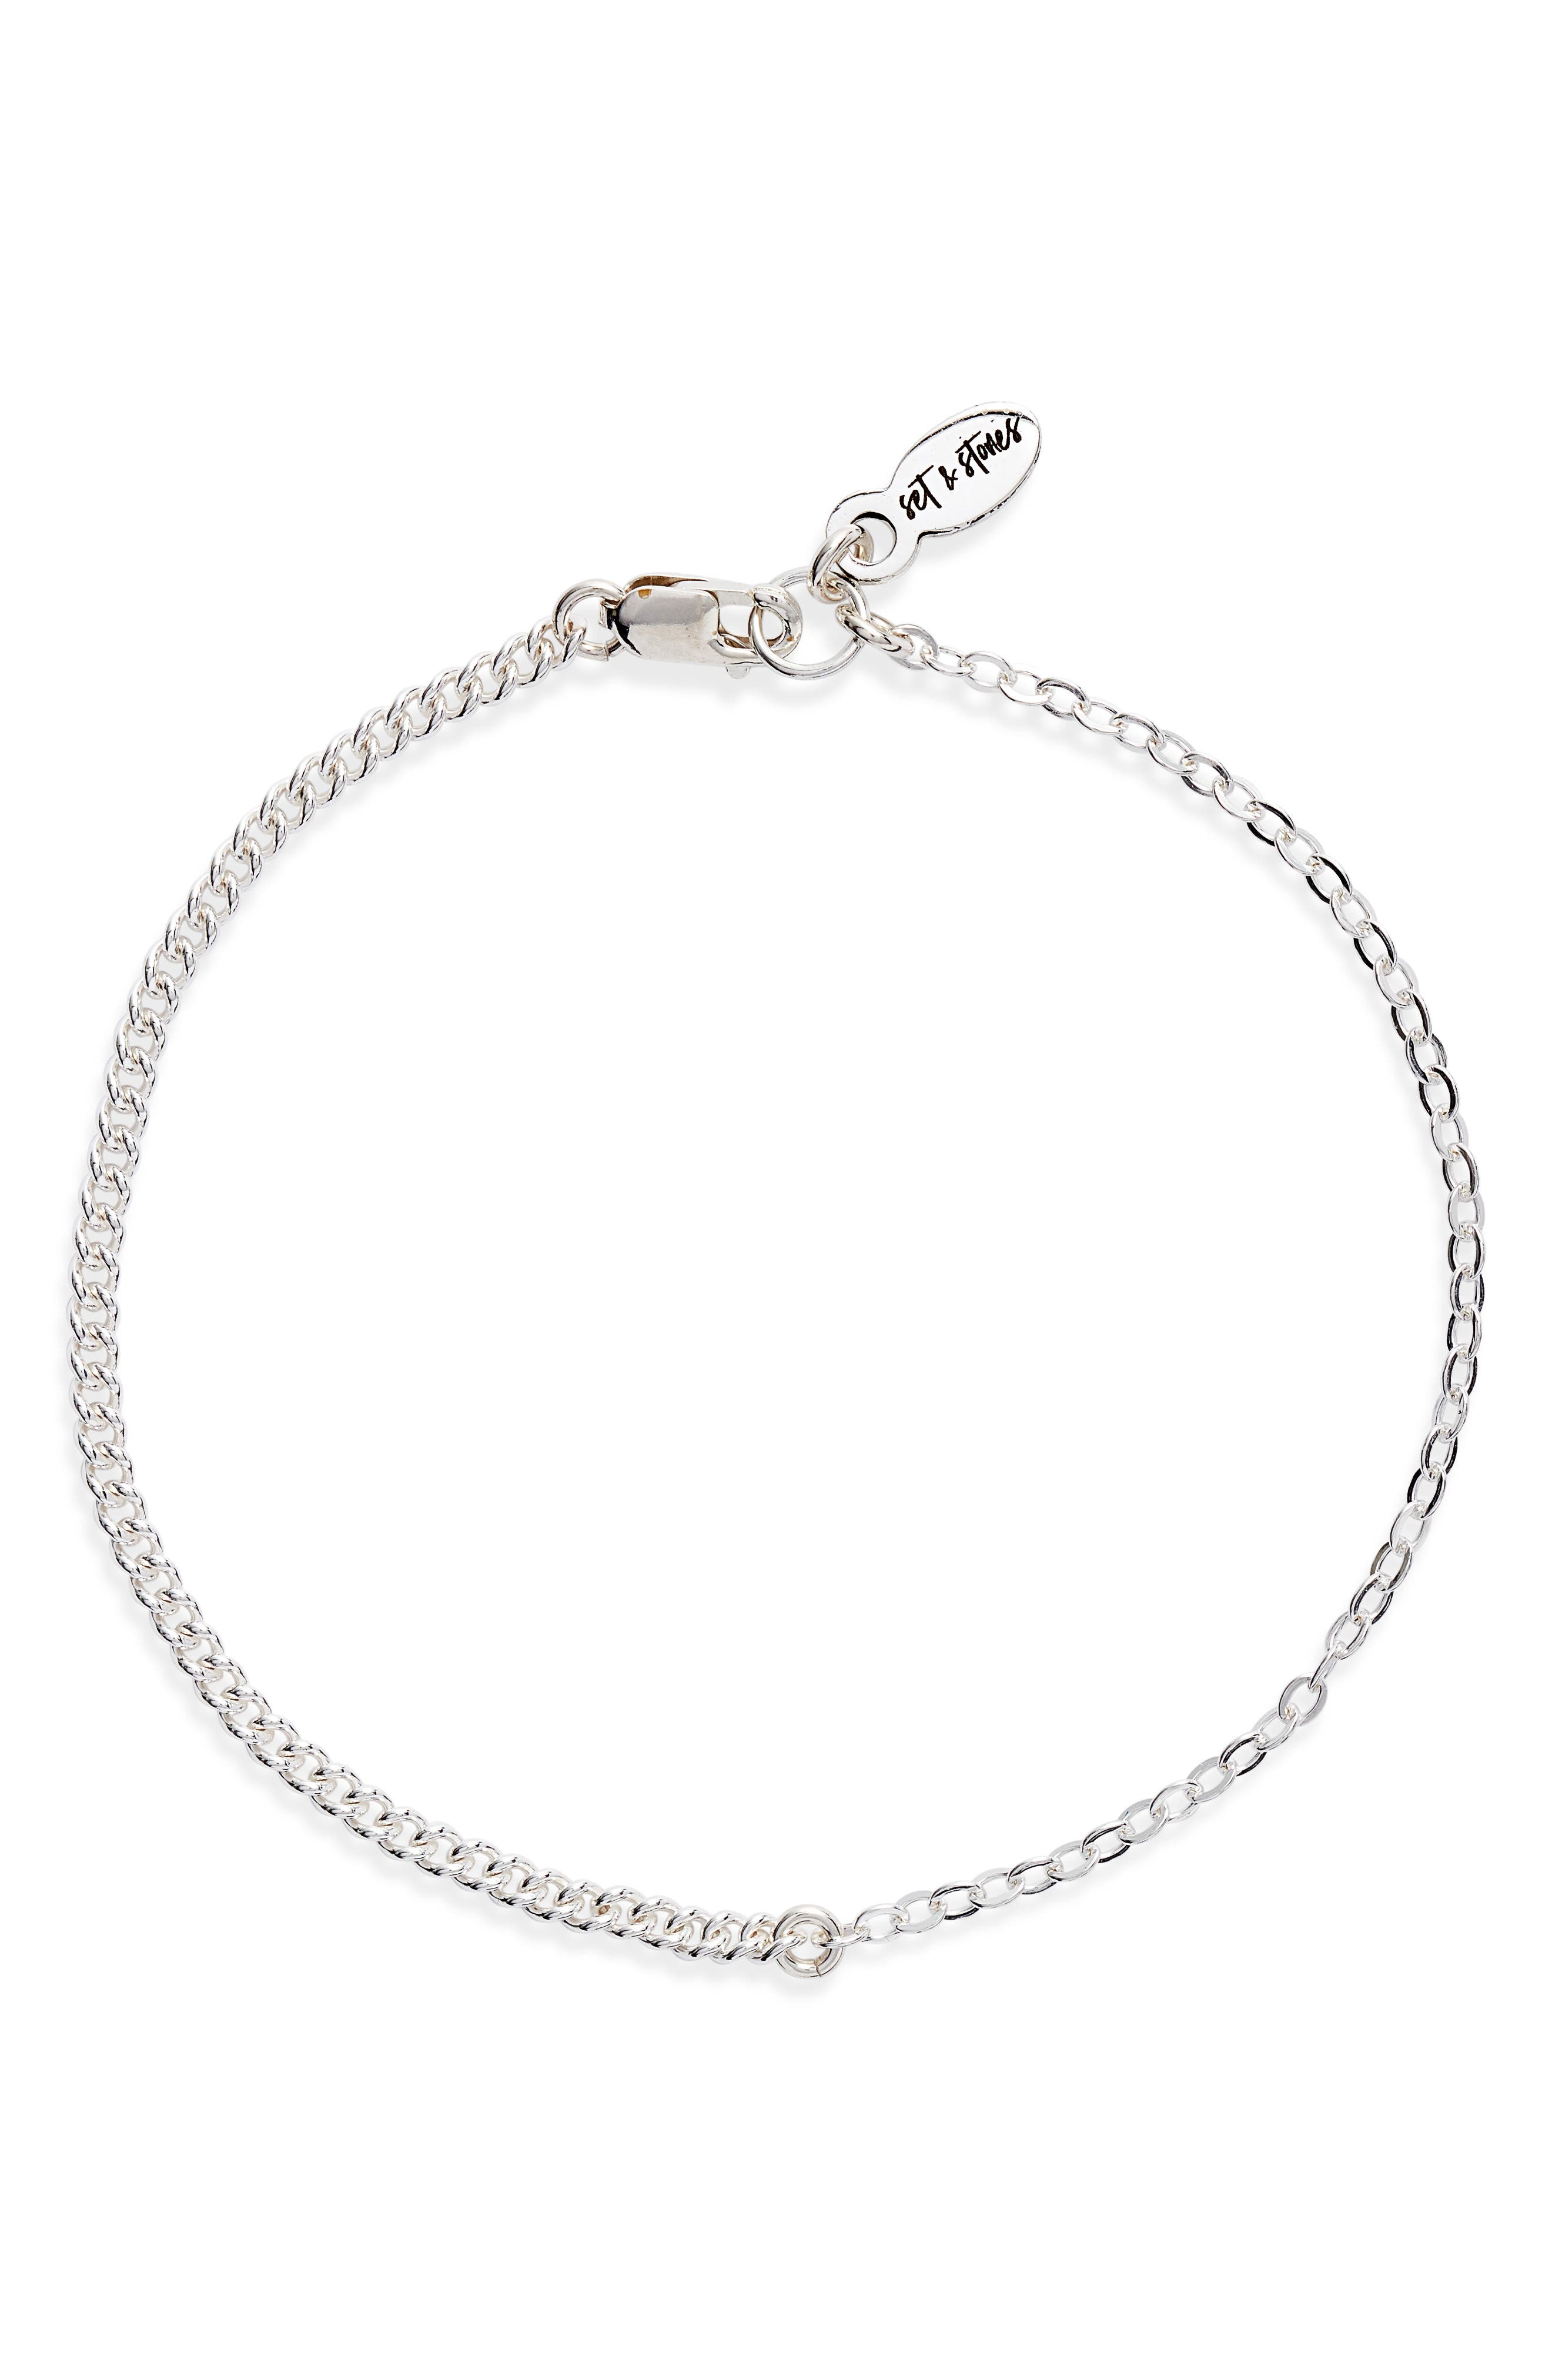 A mix of links brings gleam and shine to this versatile chain bracelet that will quickly be your everyday fave. Style Name: Set & Stones Jane Chain Link Braccelet. Style Number: 6093905. Available in stores.